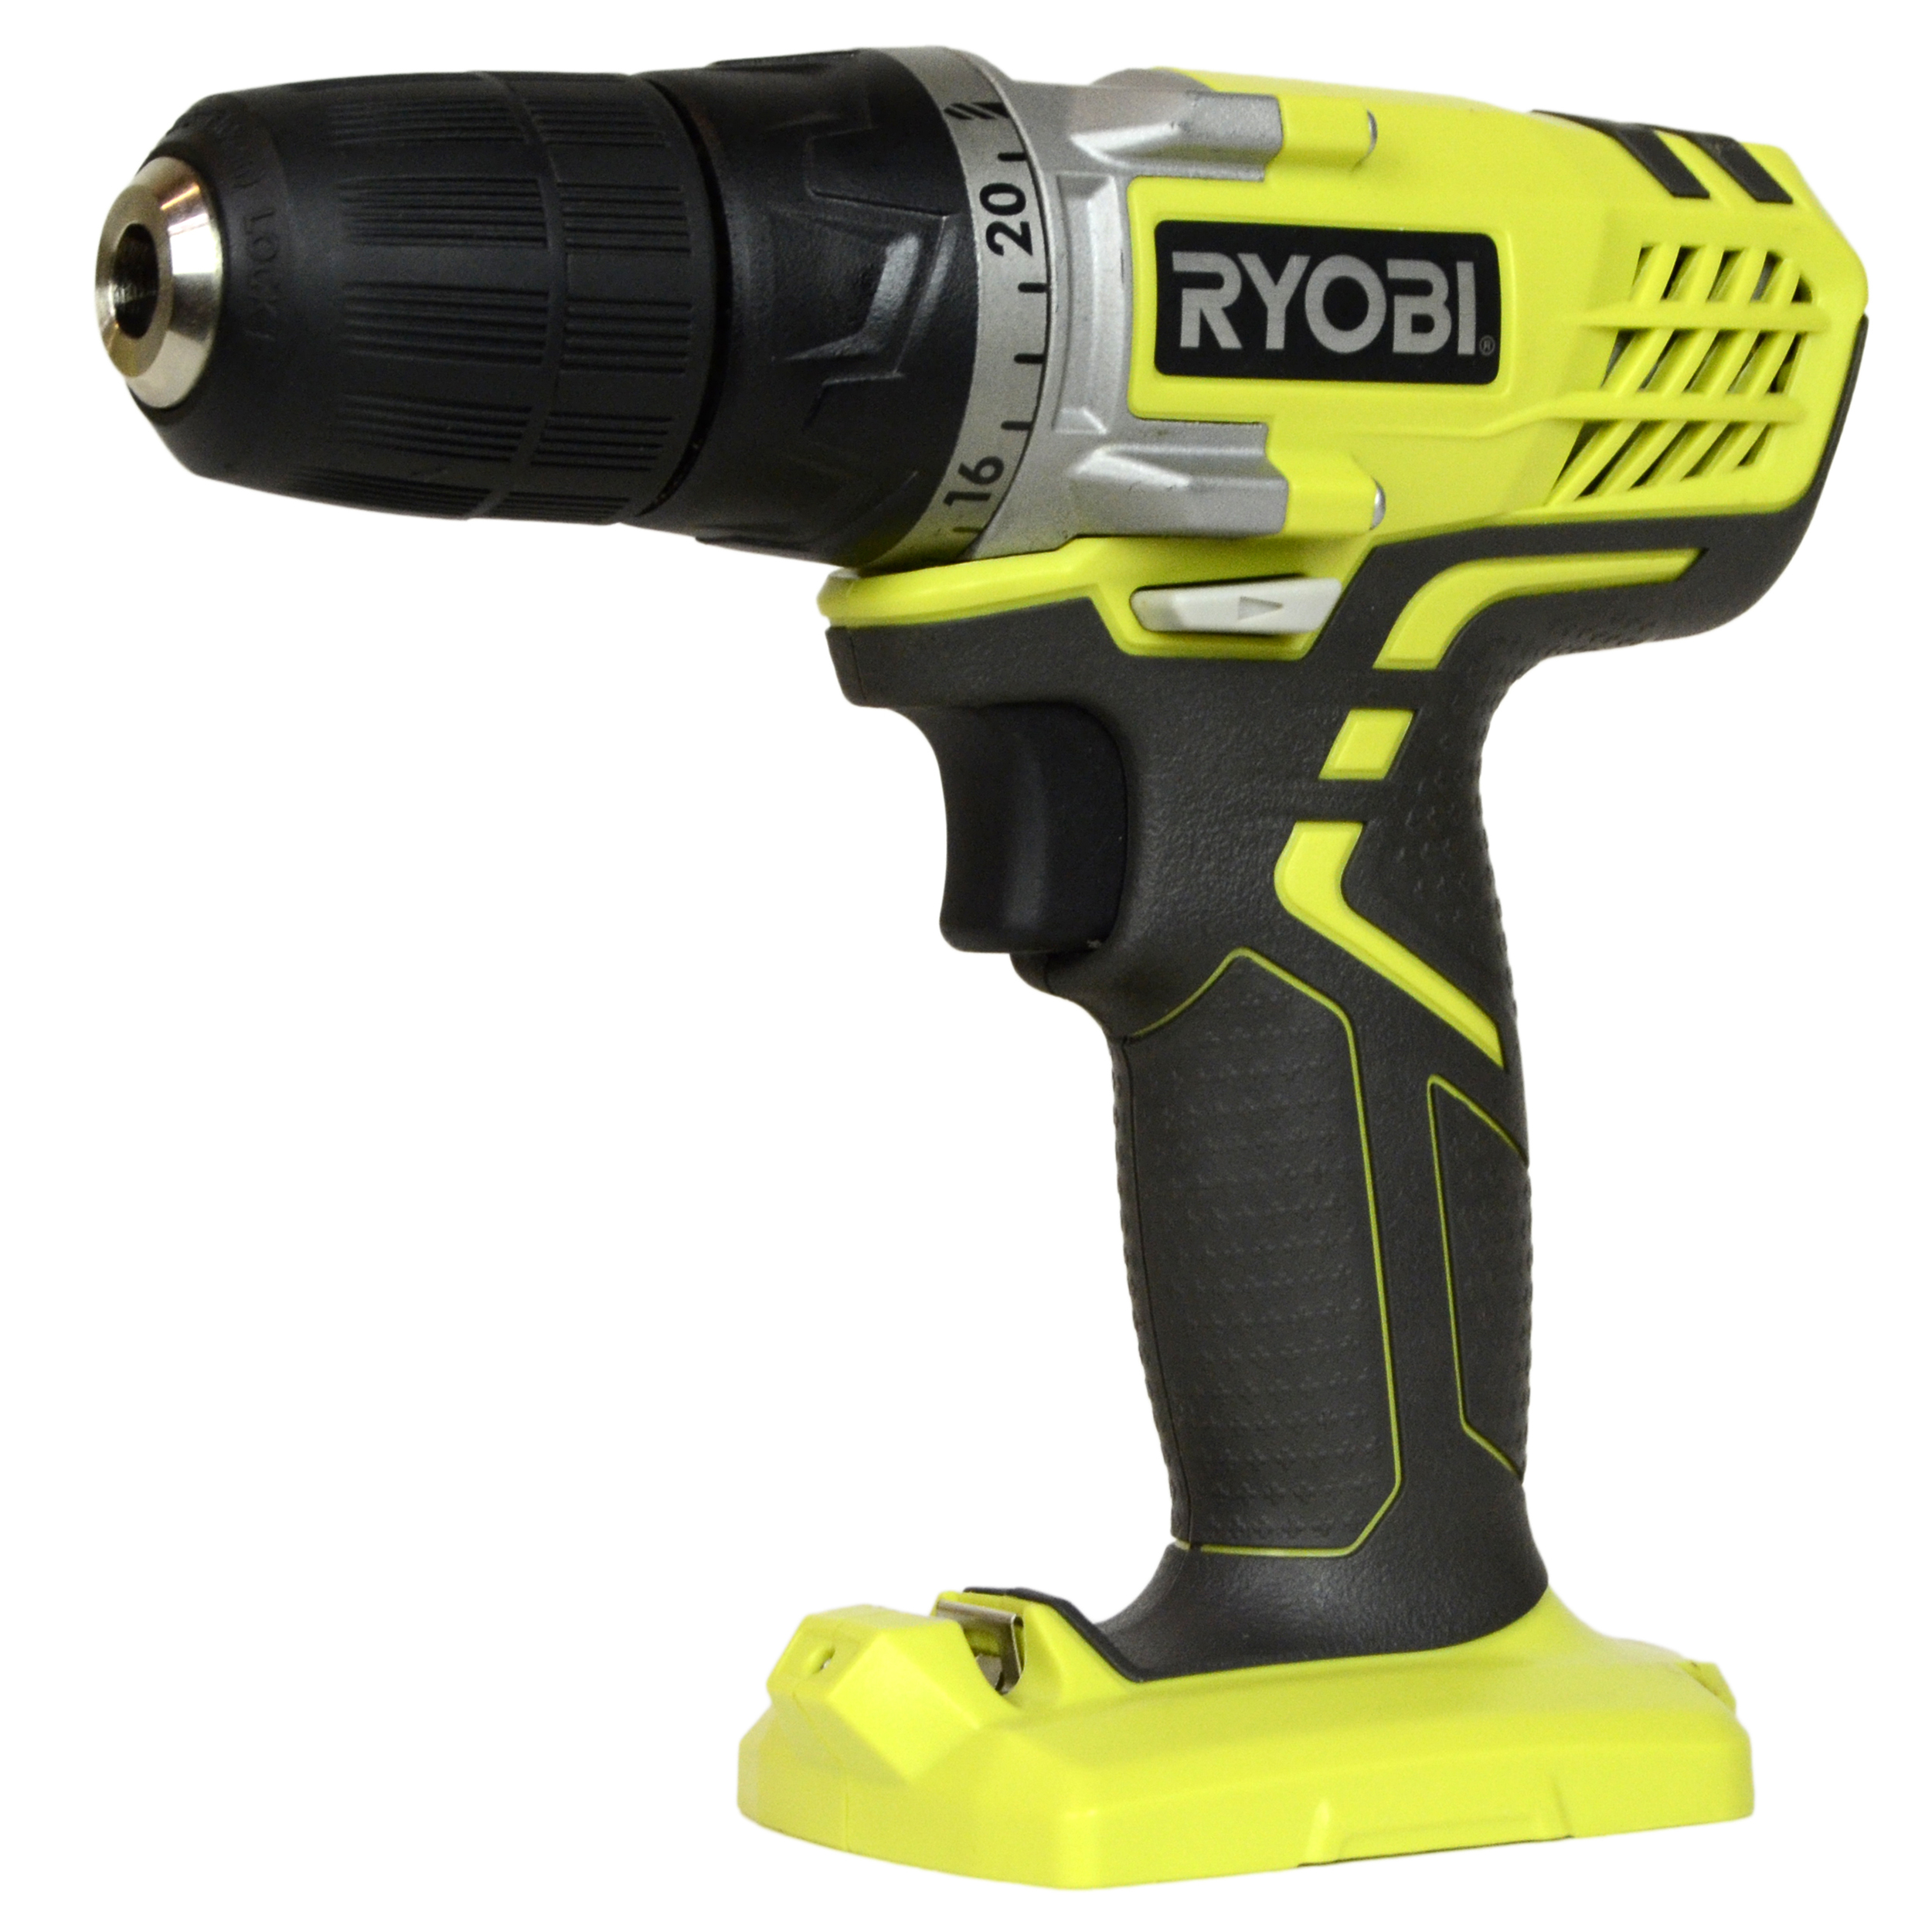 "Ryobi Tools Reconditioned HJP003 12V 3/8"" Lithium Ion Cordless Drill Driver, Bare Tool Only"